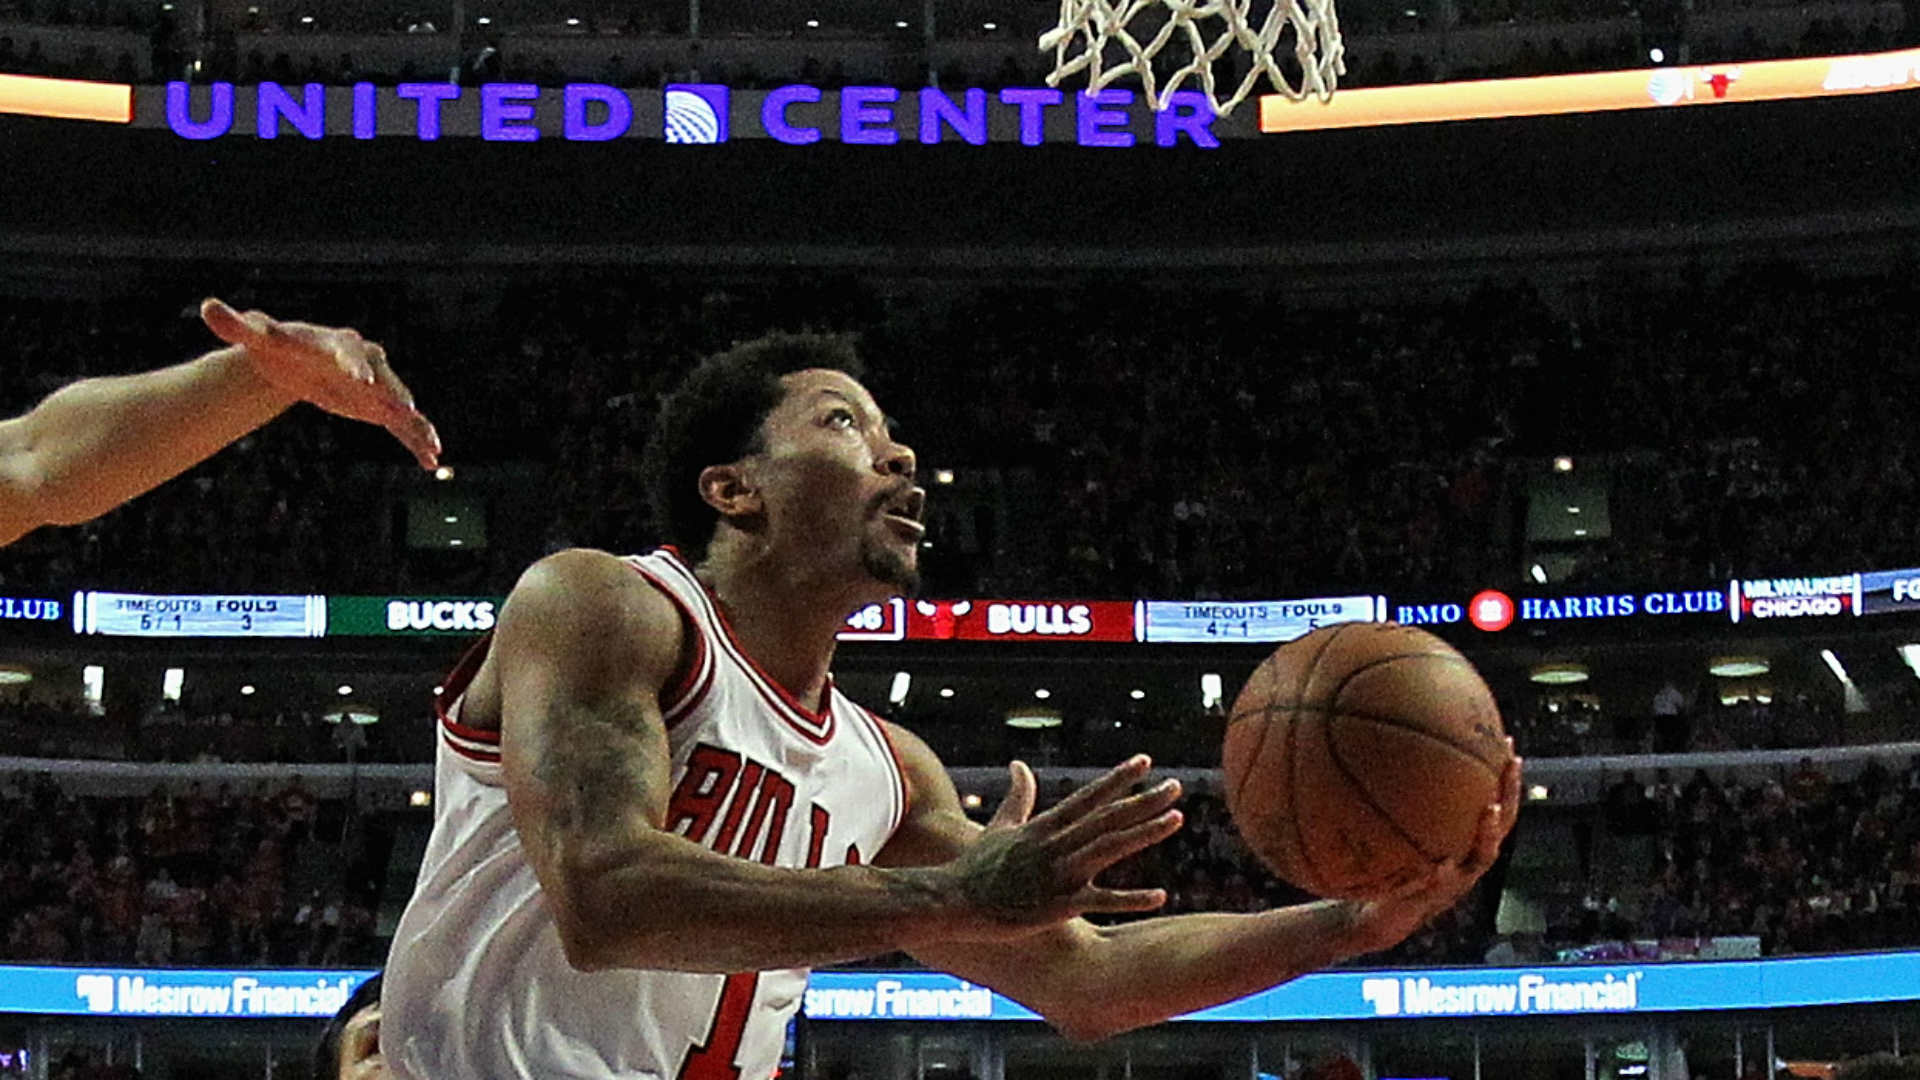 NBA playoffs roundup: Rose returns, Davis dominates on playoffs' opening day